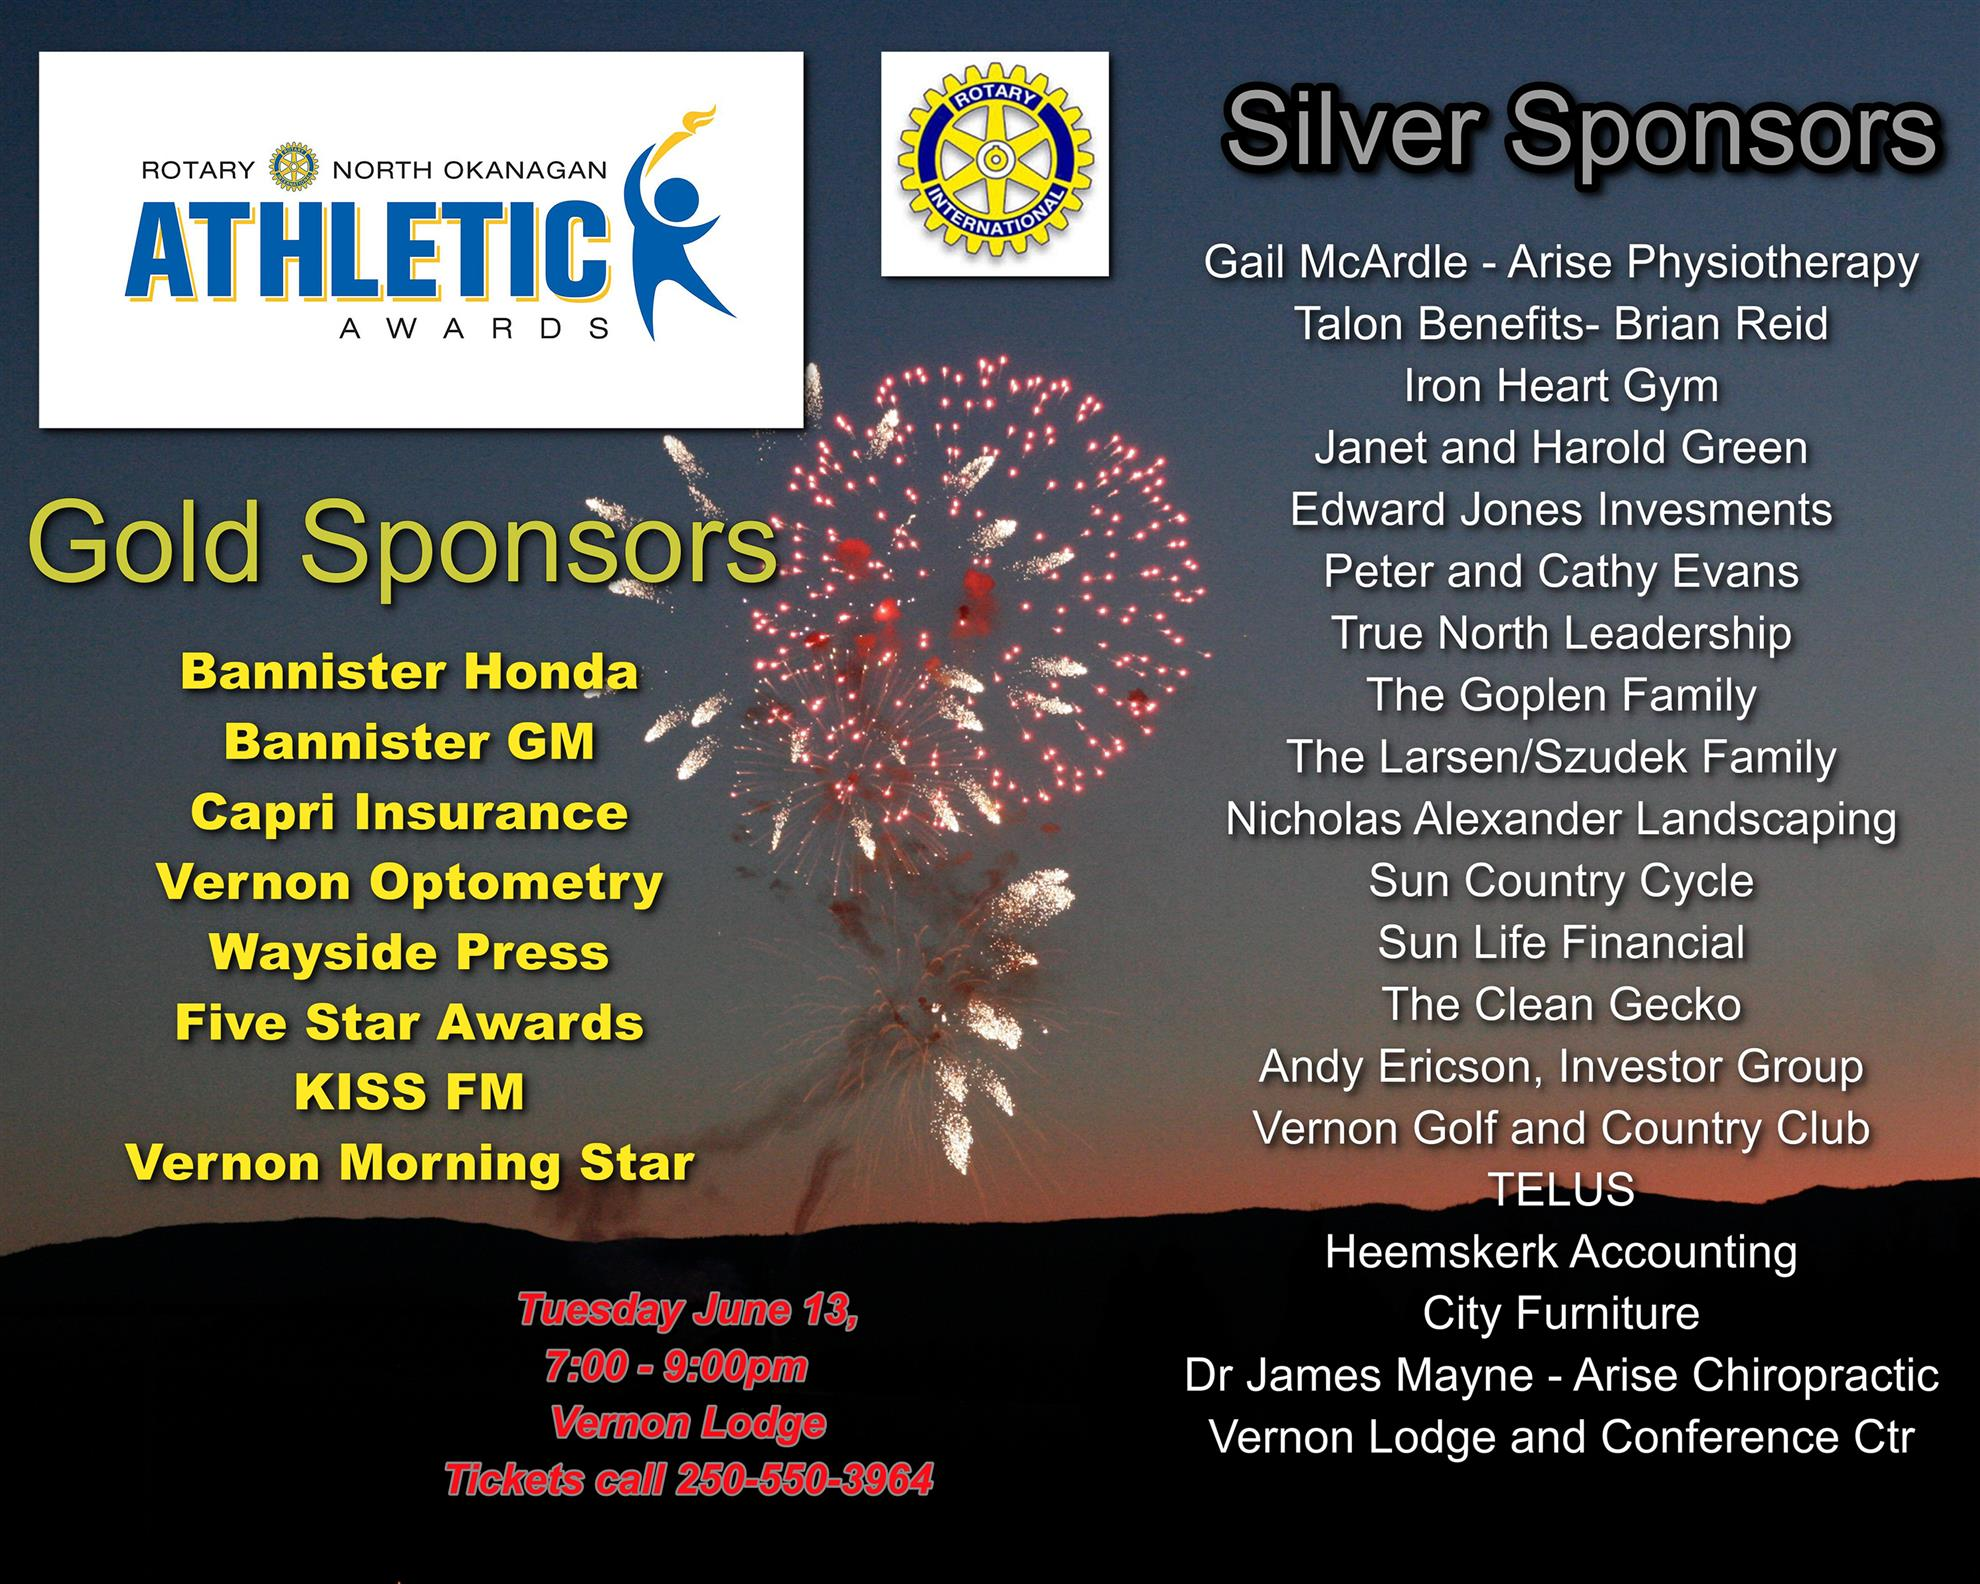 Color master inc in vernon - Vernon Silver Star Rotary Would Like To Thank All Of The Following For Contributing Towards The 2017 Rotary North Okanagan Athletic Awards